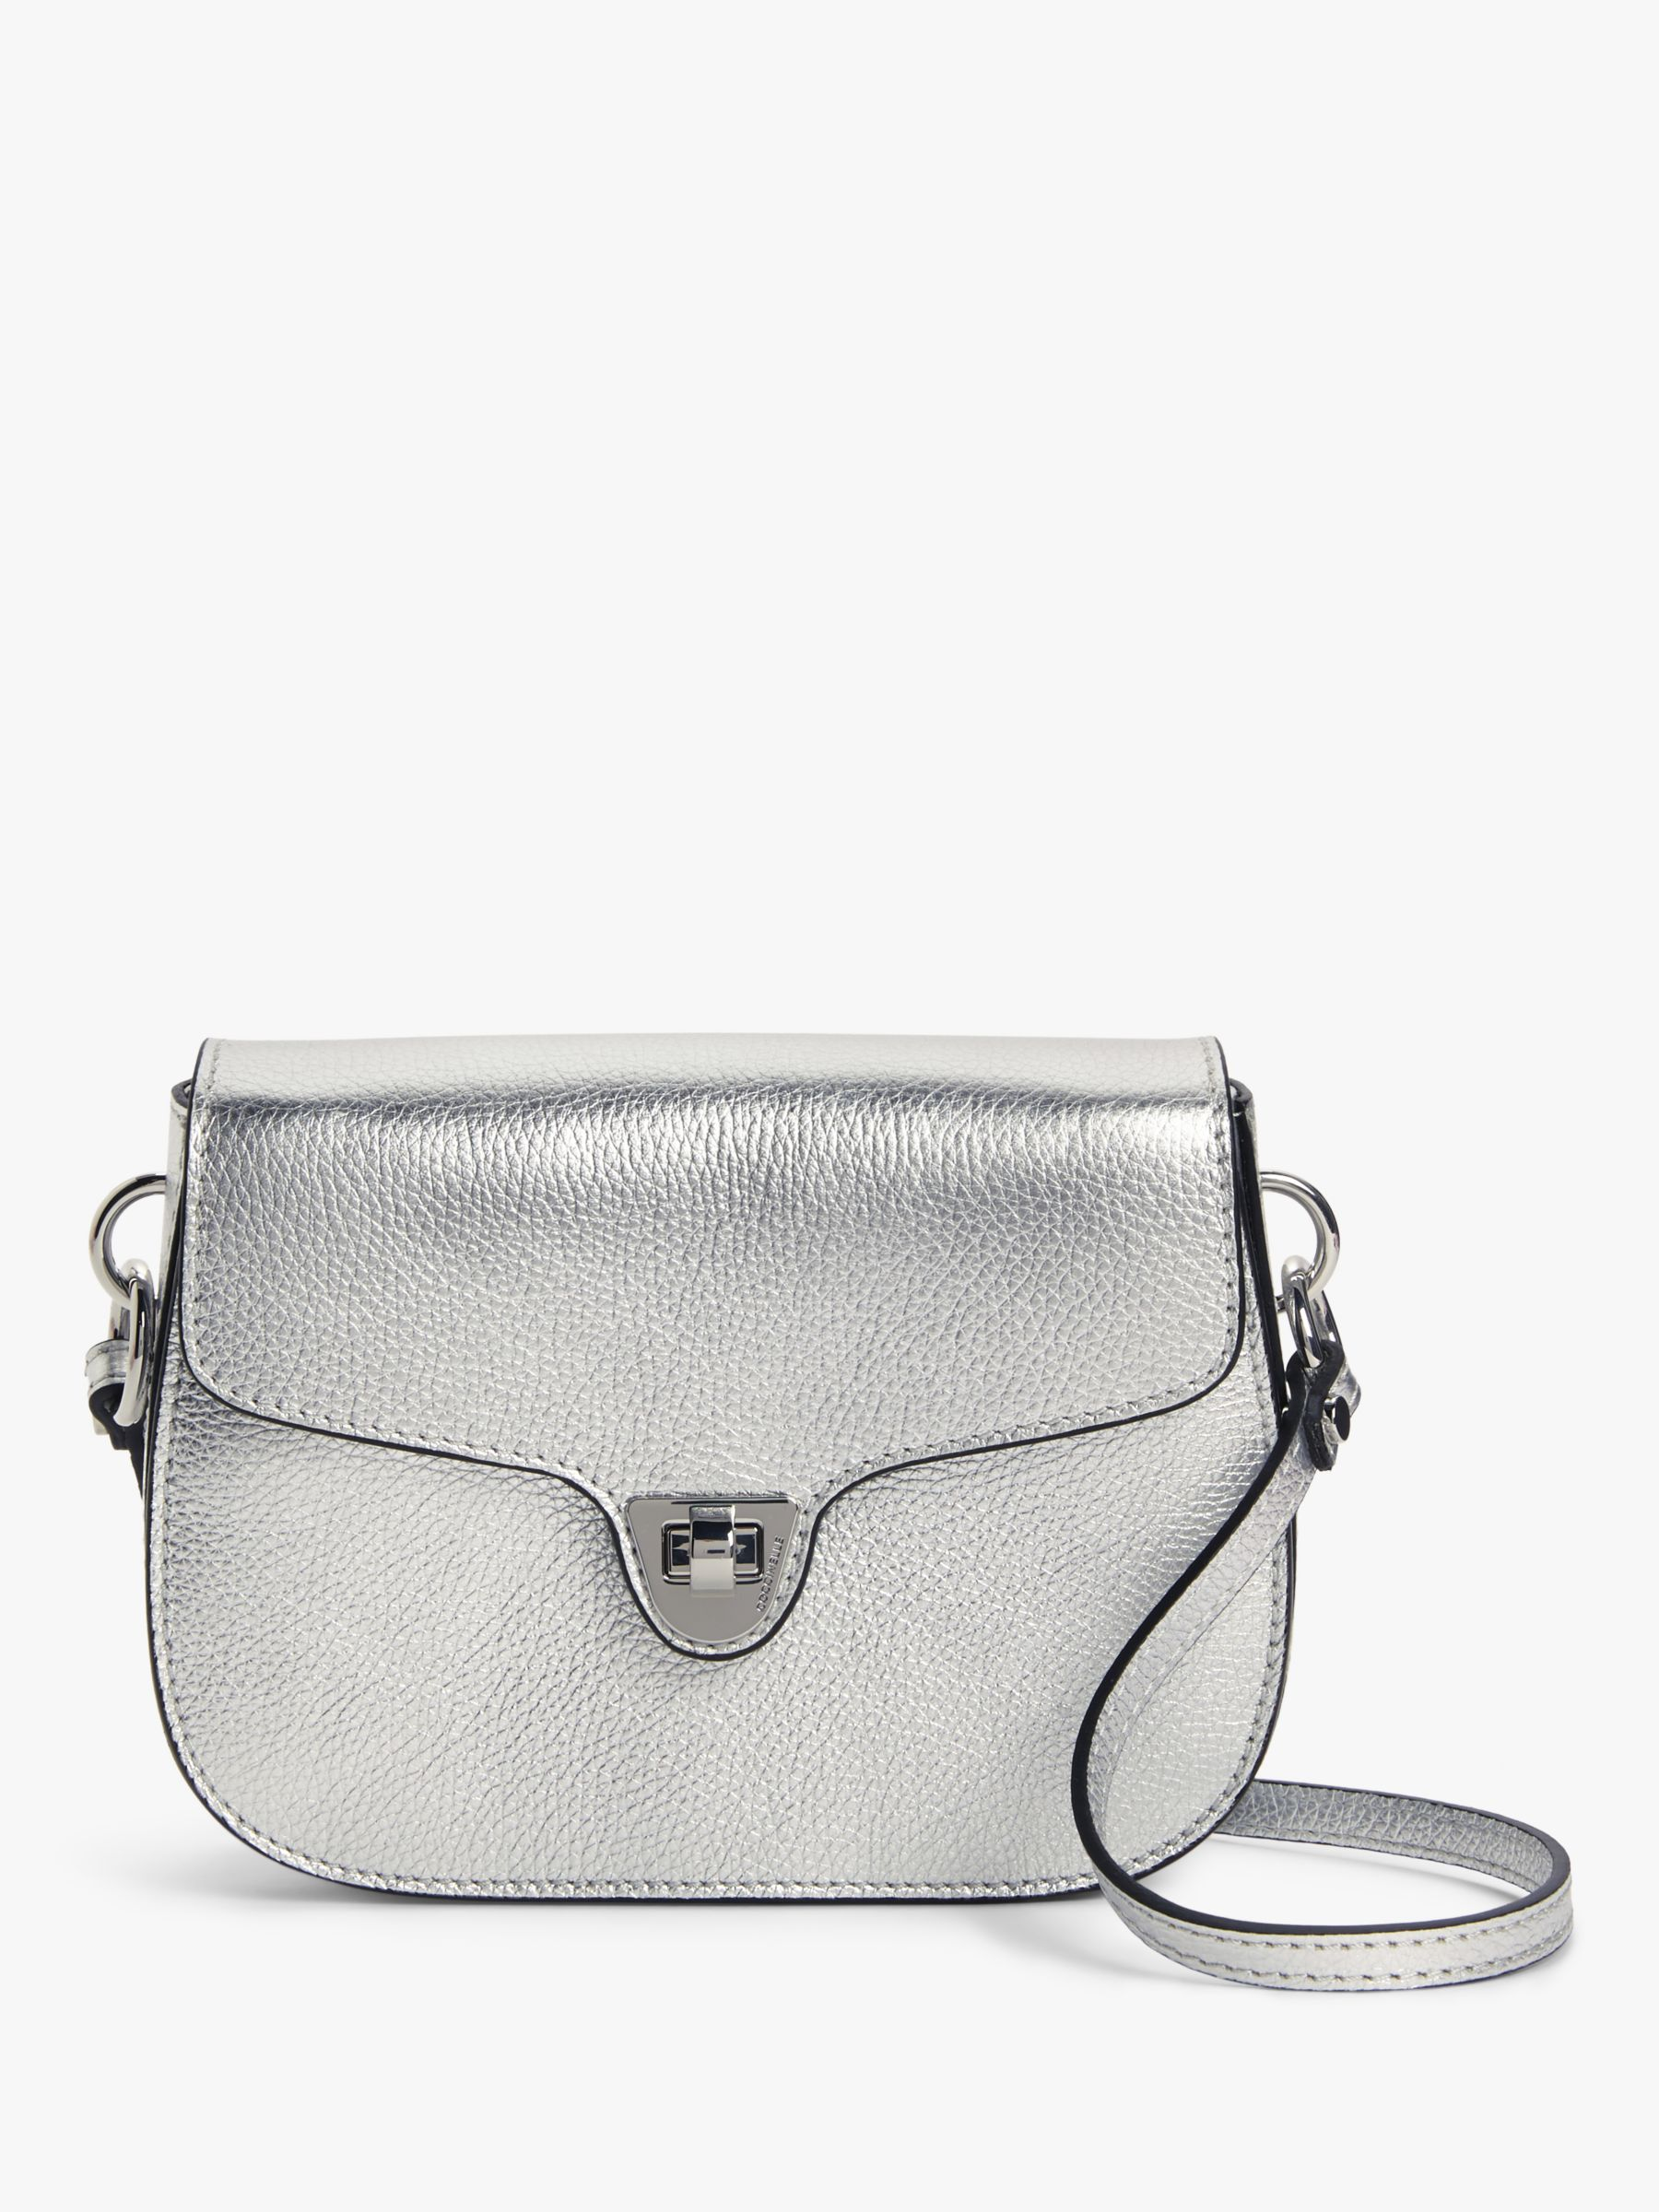 Coccinelle Coccinelle Mini Florence Leather Bag